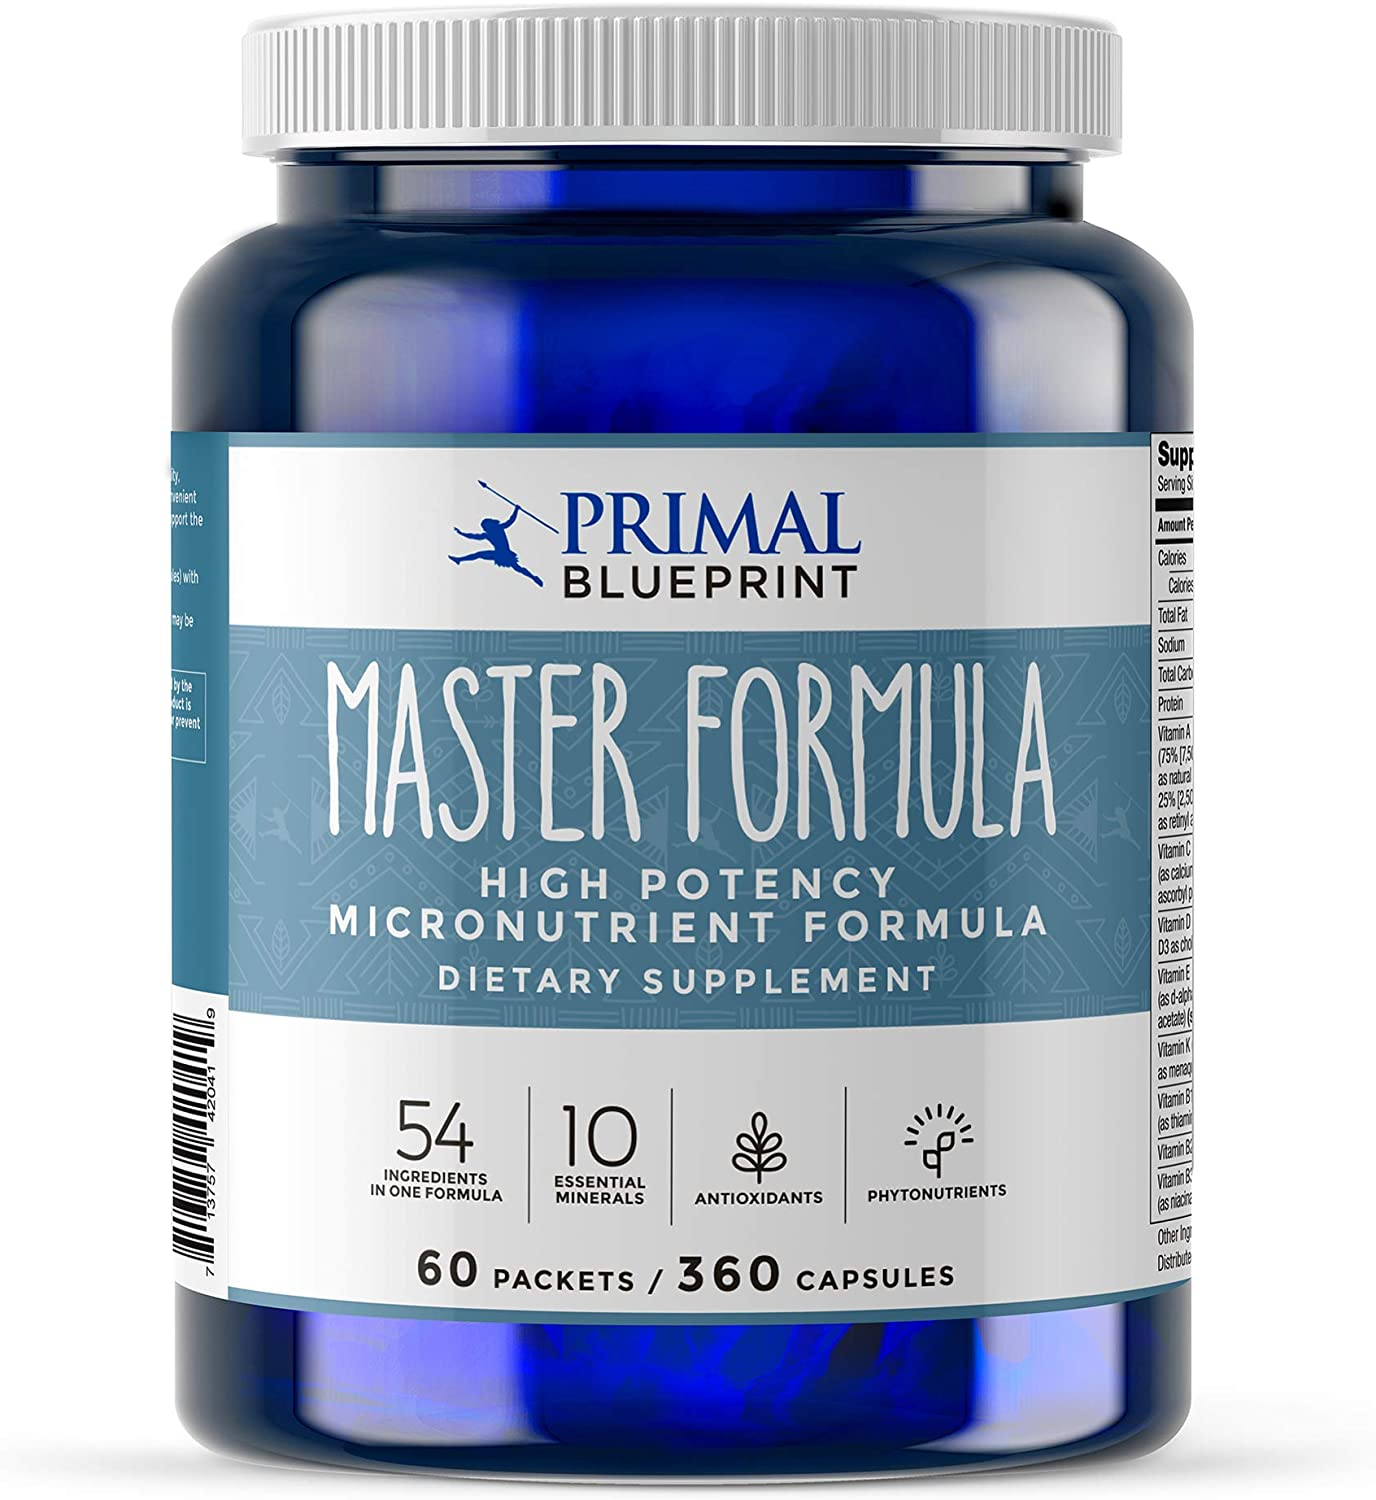 Primal Blueprint Master Formula, Ultra High Potency Multivitamin, 360 Count